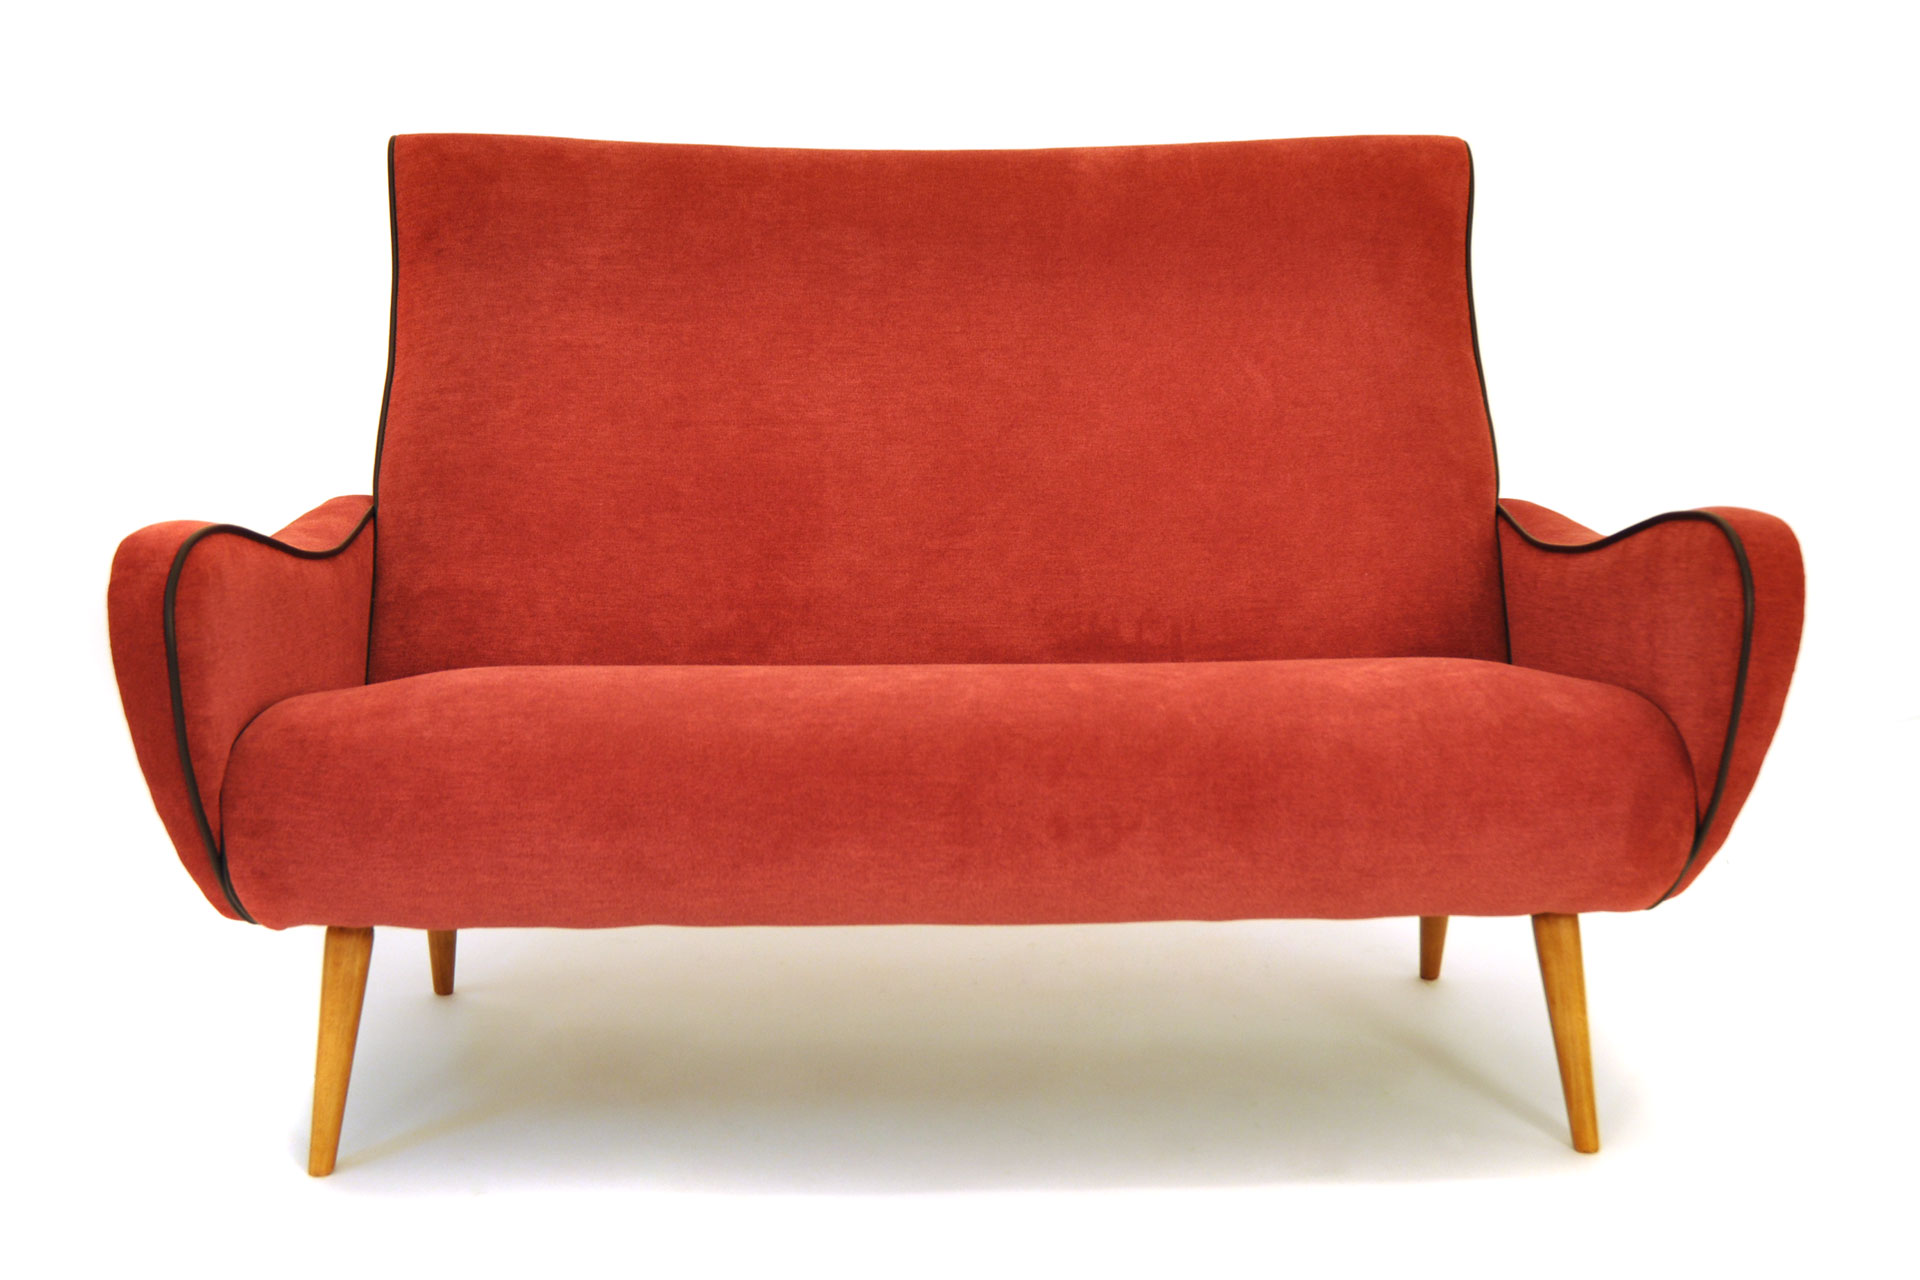 couch-it-40a.jpg